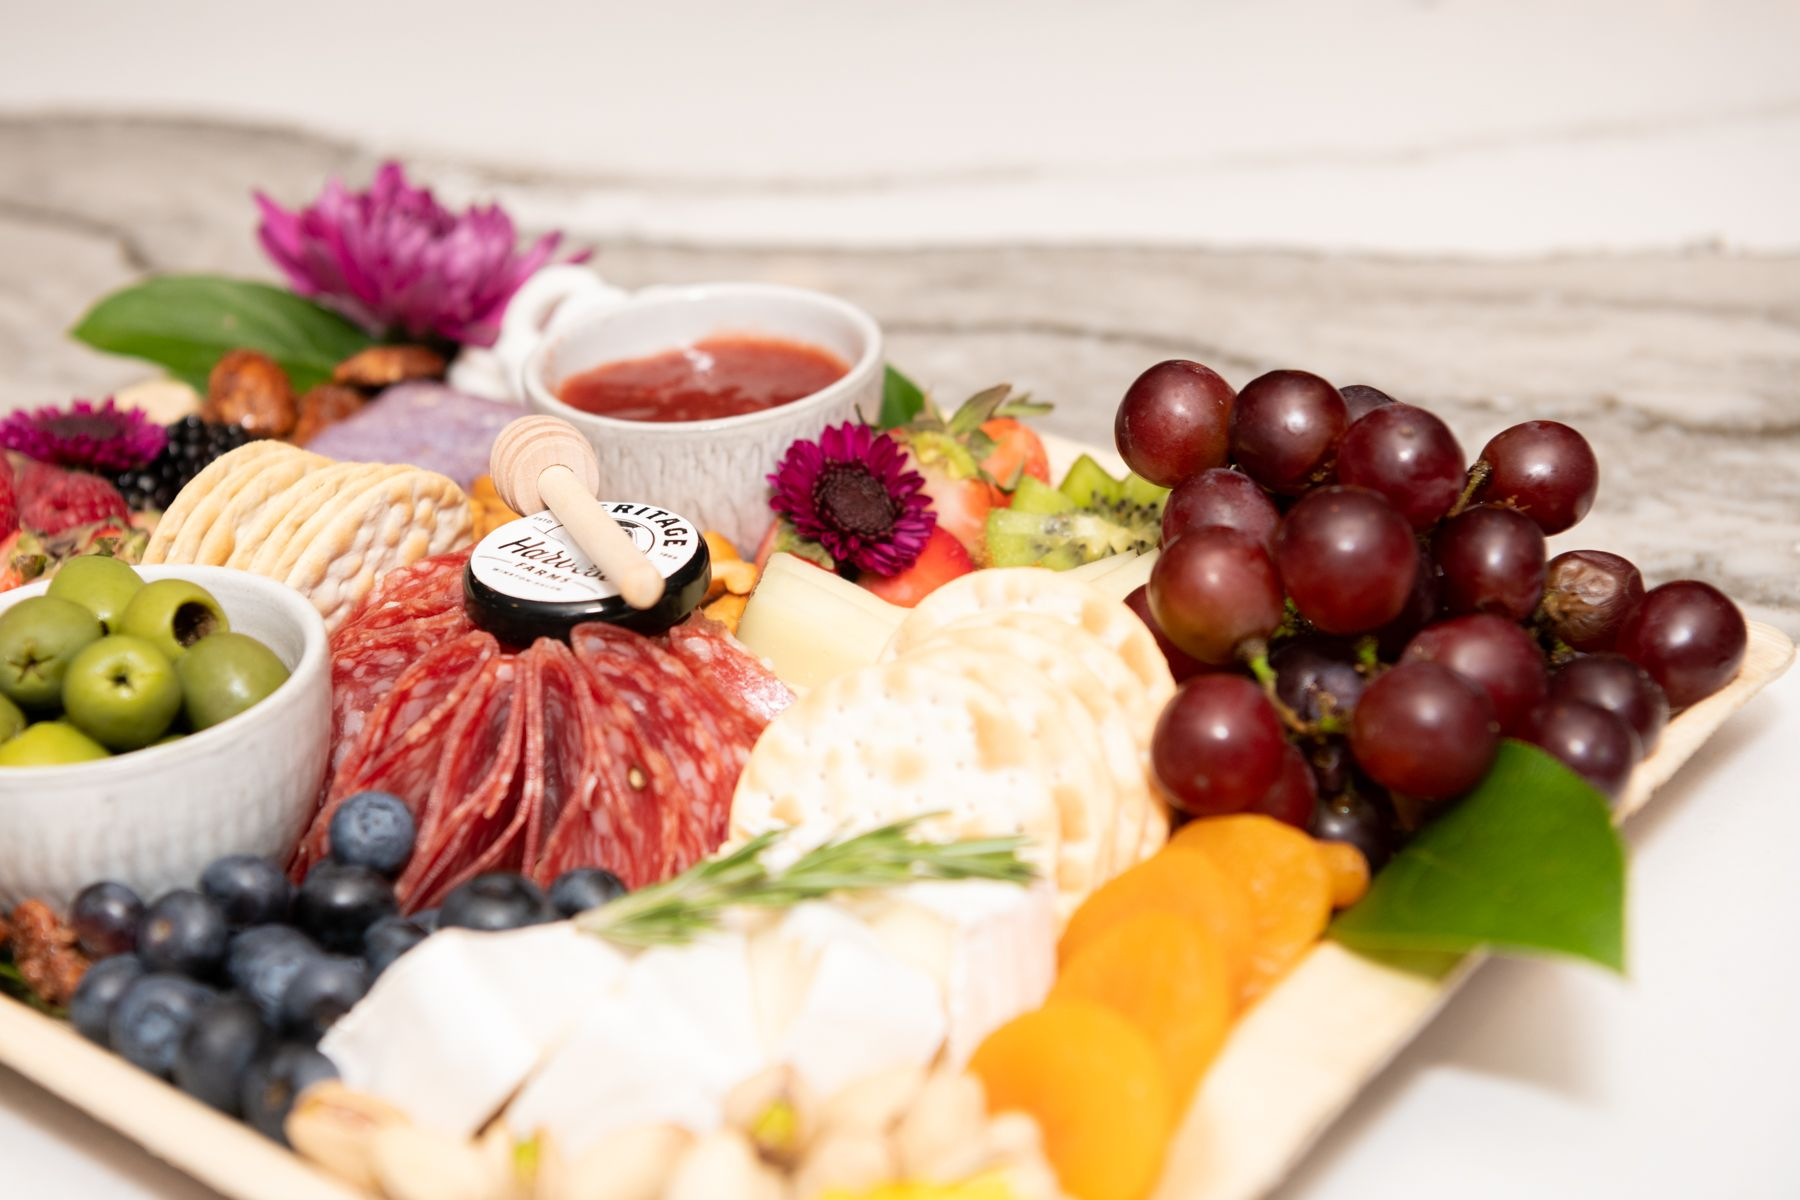 A charcuterie board by The Blooming Board in High Point, NC.